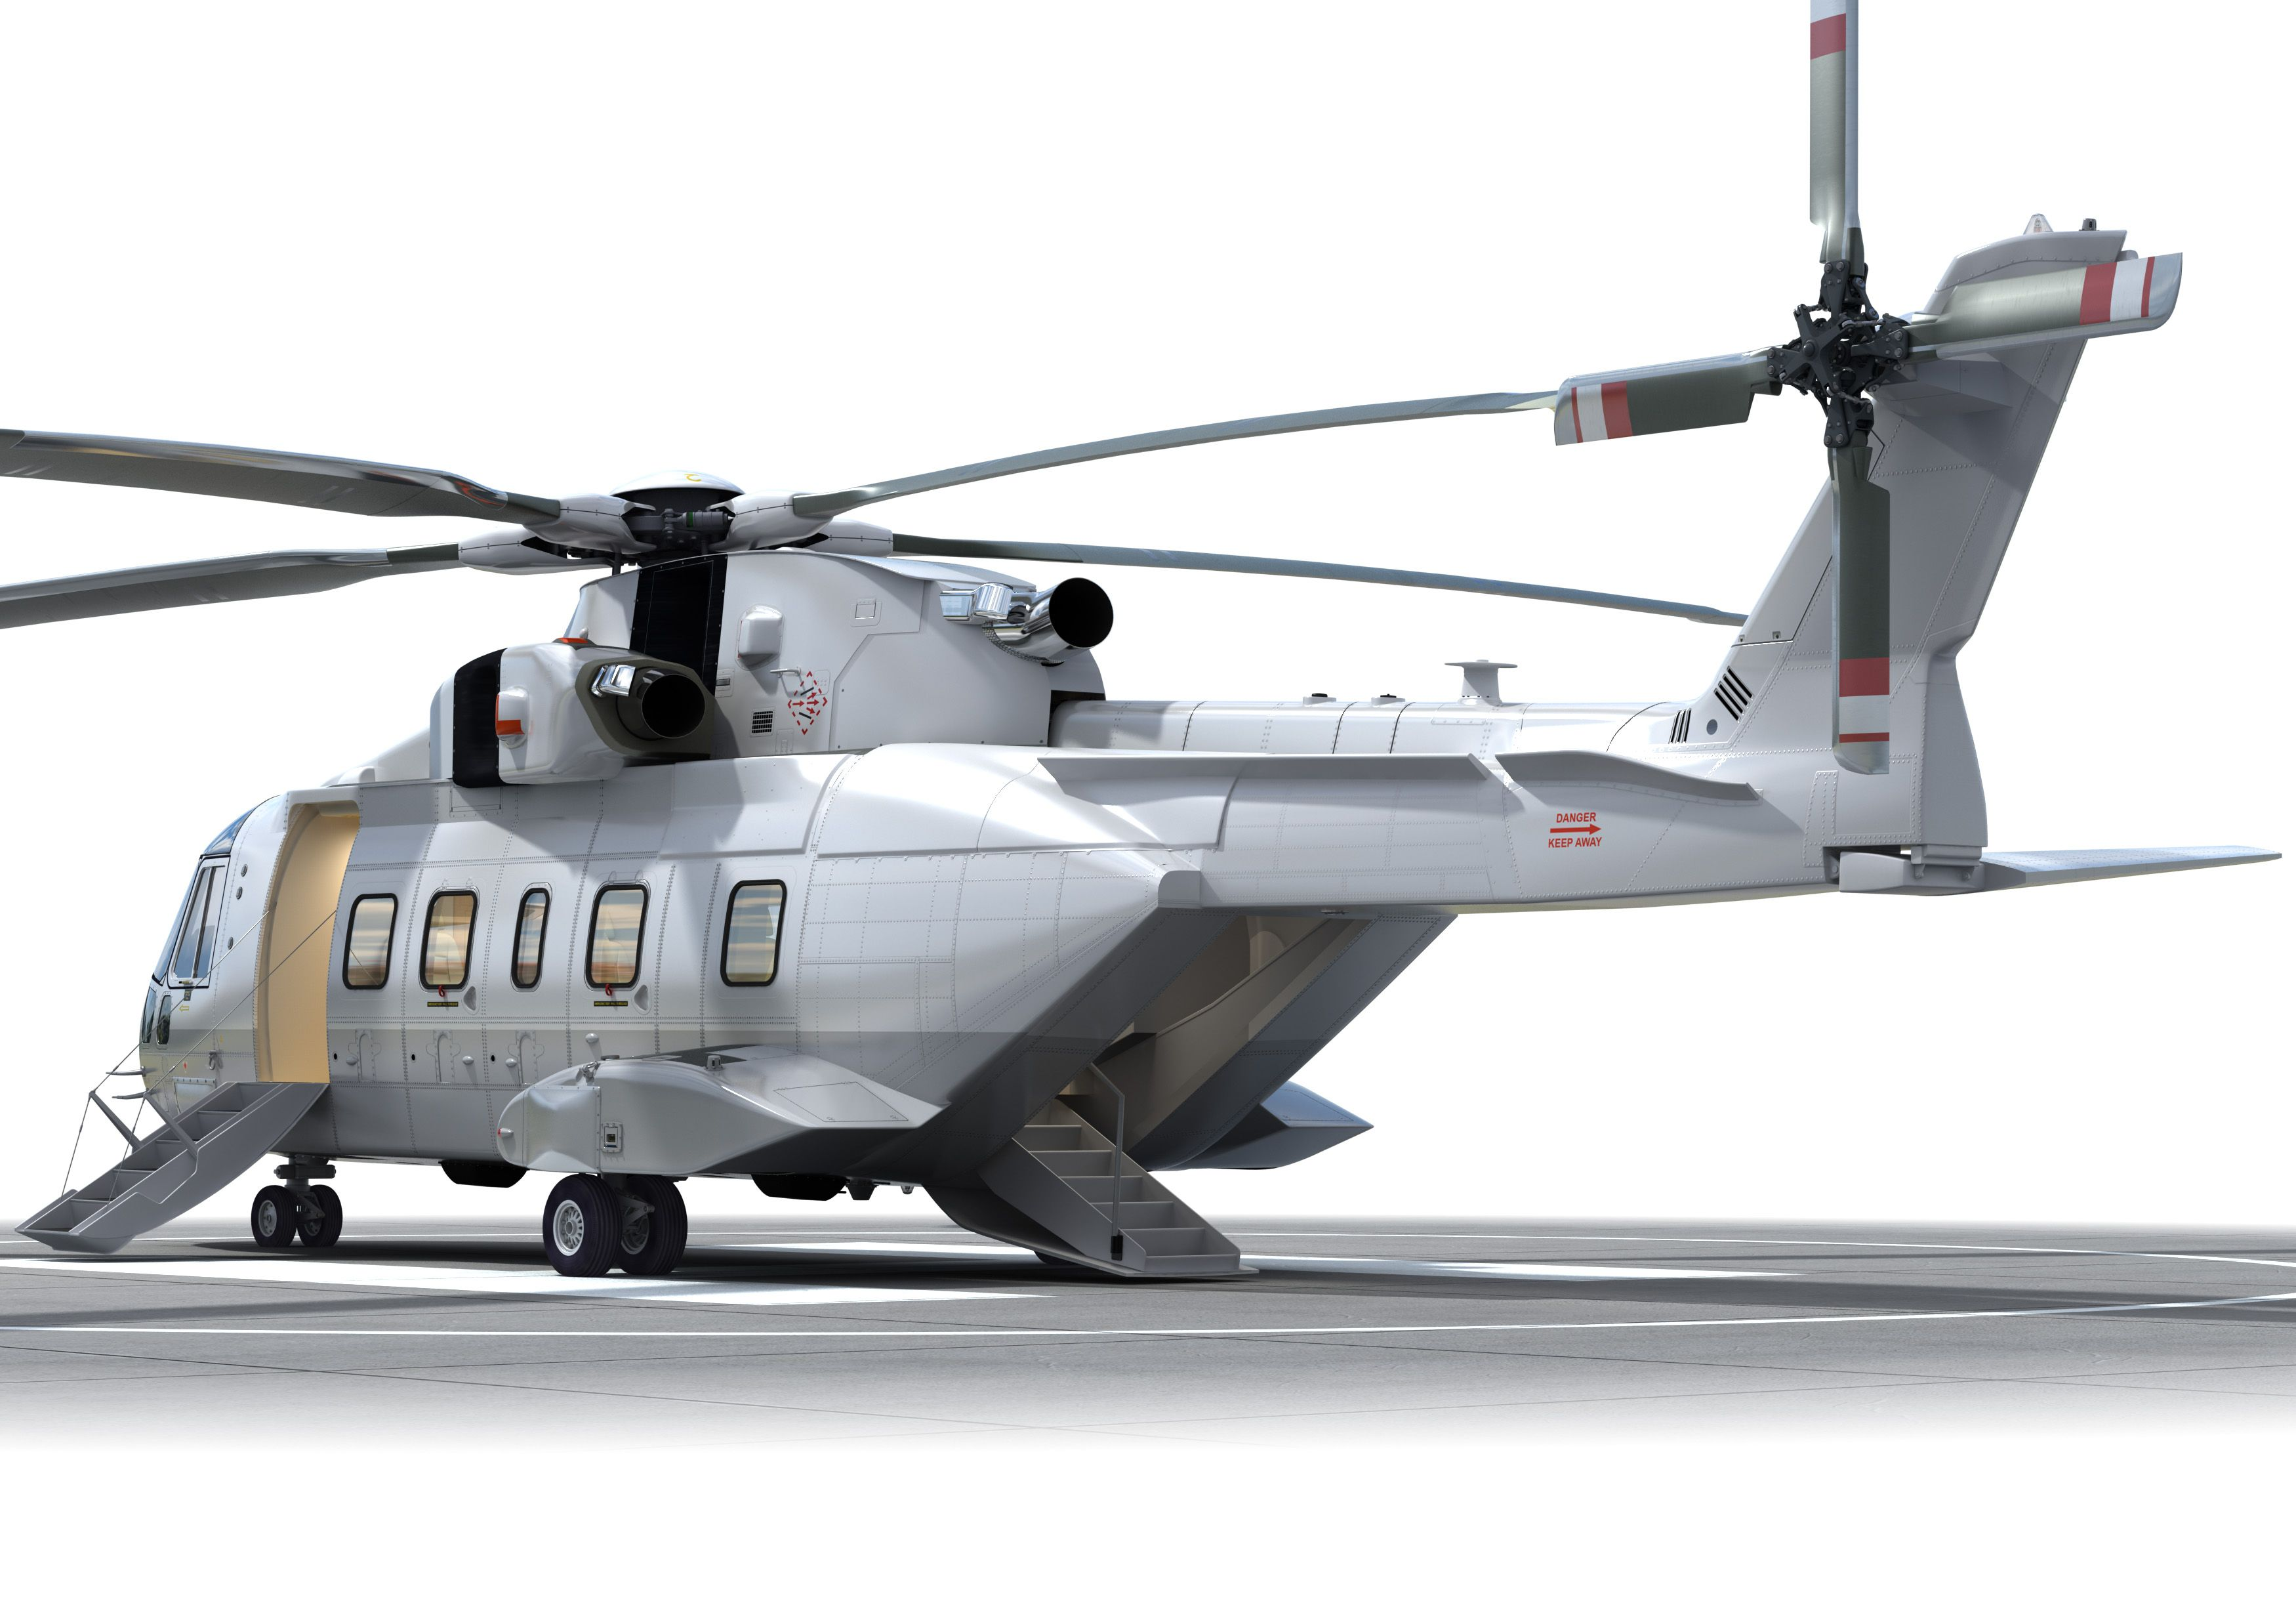 real airwolf helicopter with 412290540857176055 on Product together with Sikorsky S 97 Raider Helicoptero Pode Mudar Logistica Do  bate also 412290540857176055 further Bt movie as well File Airwolf side.